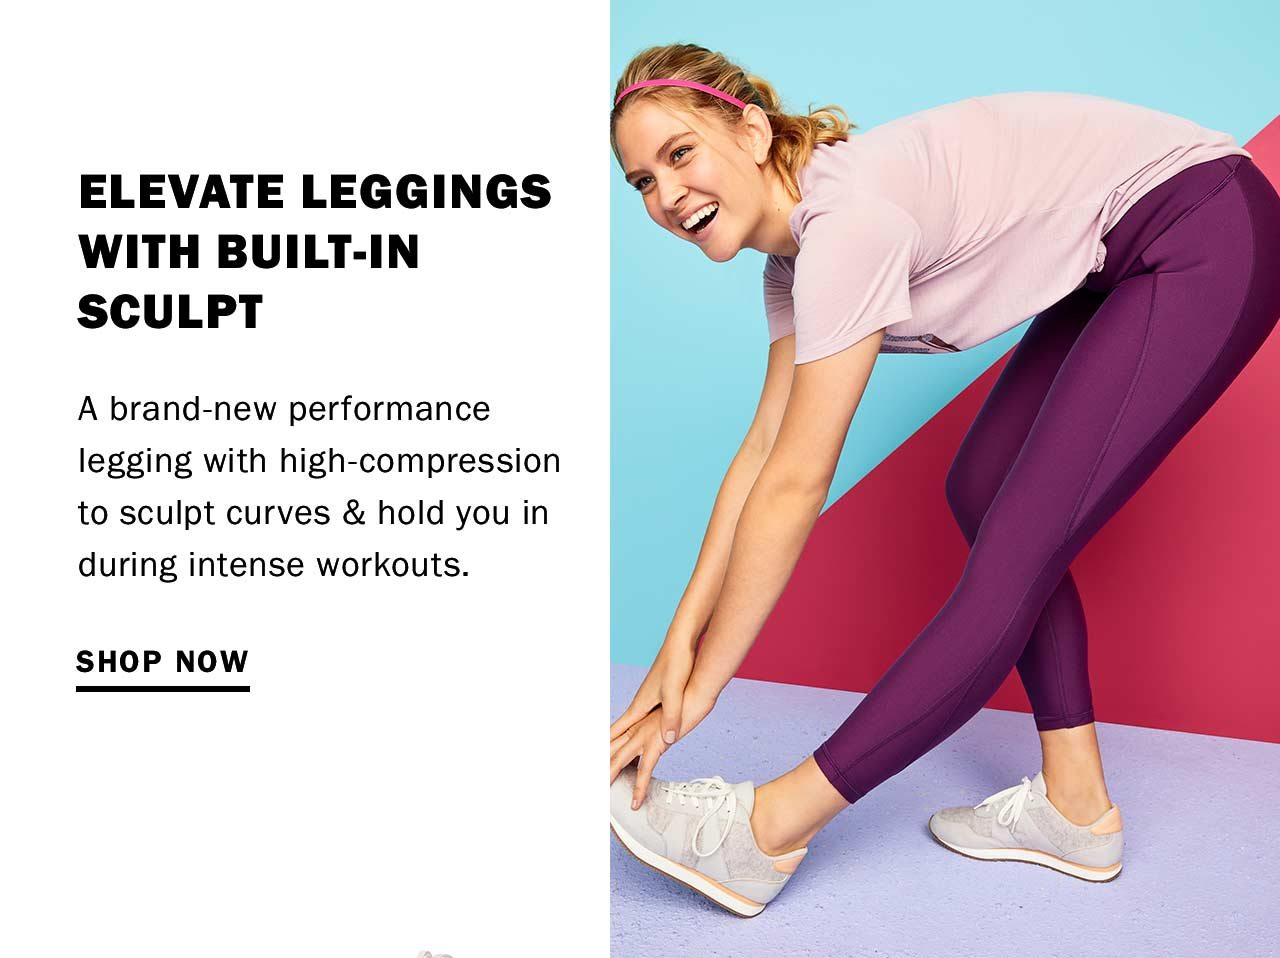 ELEVATE LEGGINGS WITH BUILT-IN SCULPT - SHOP NOW